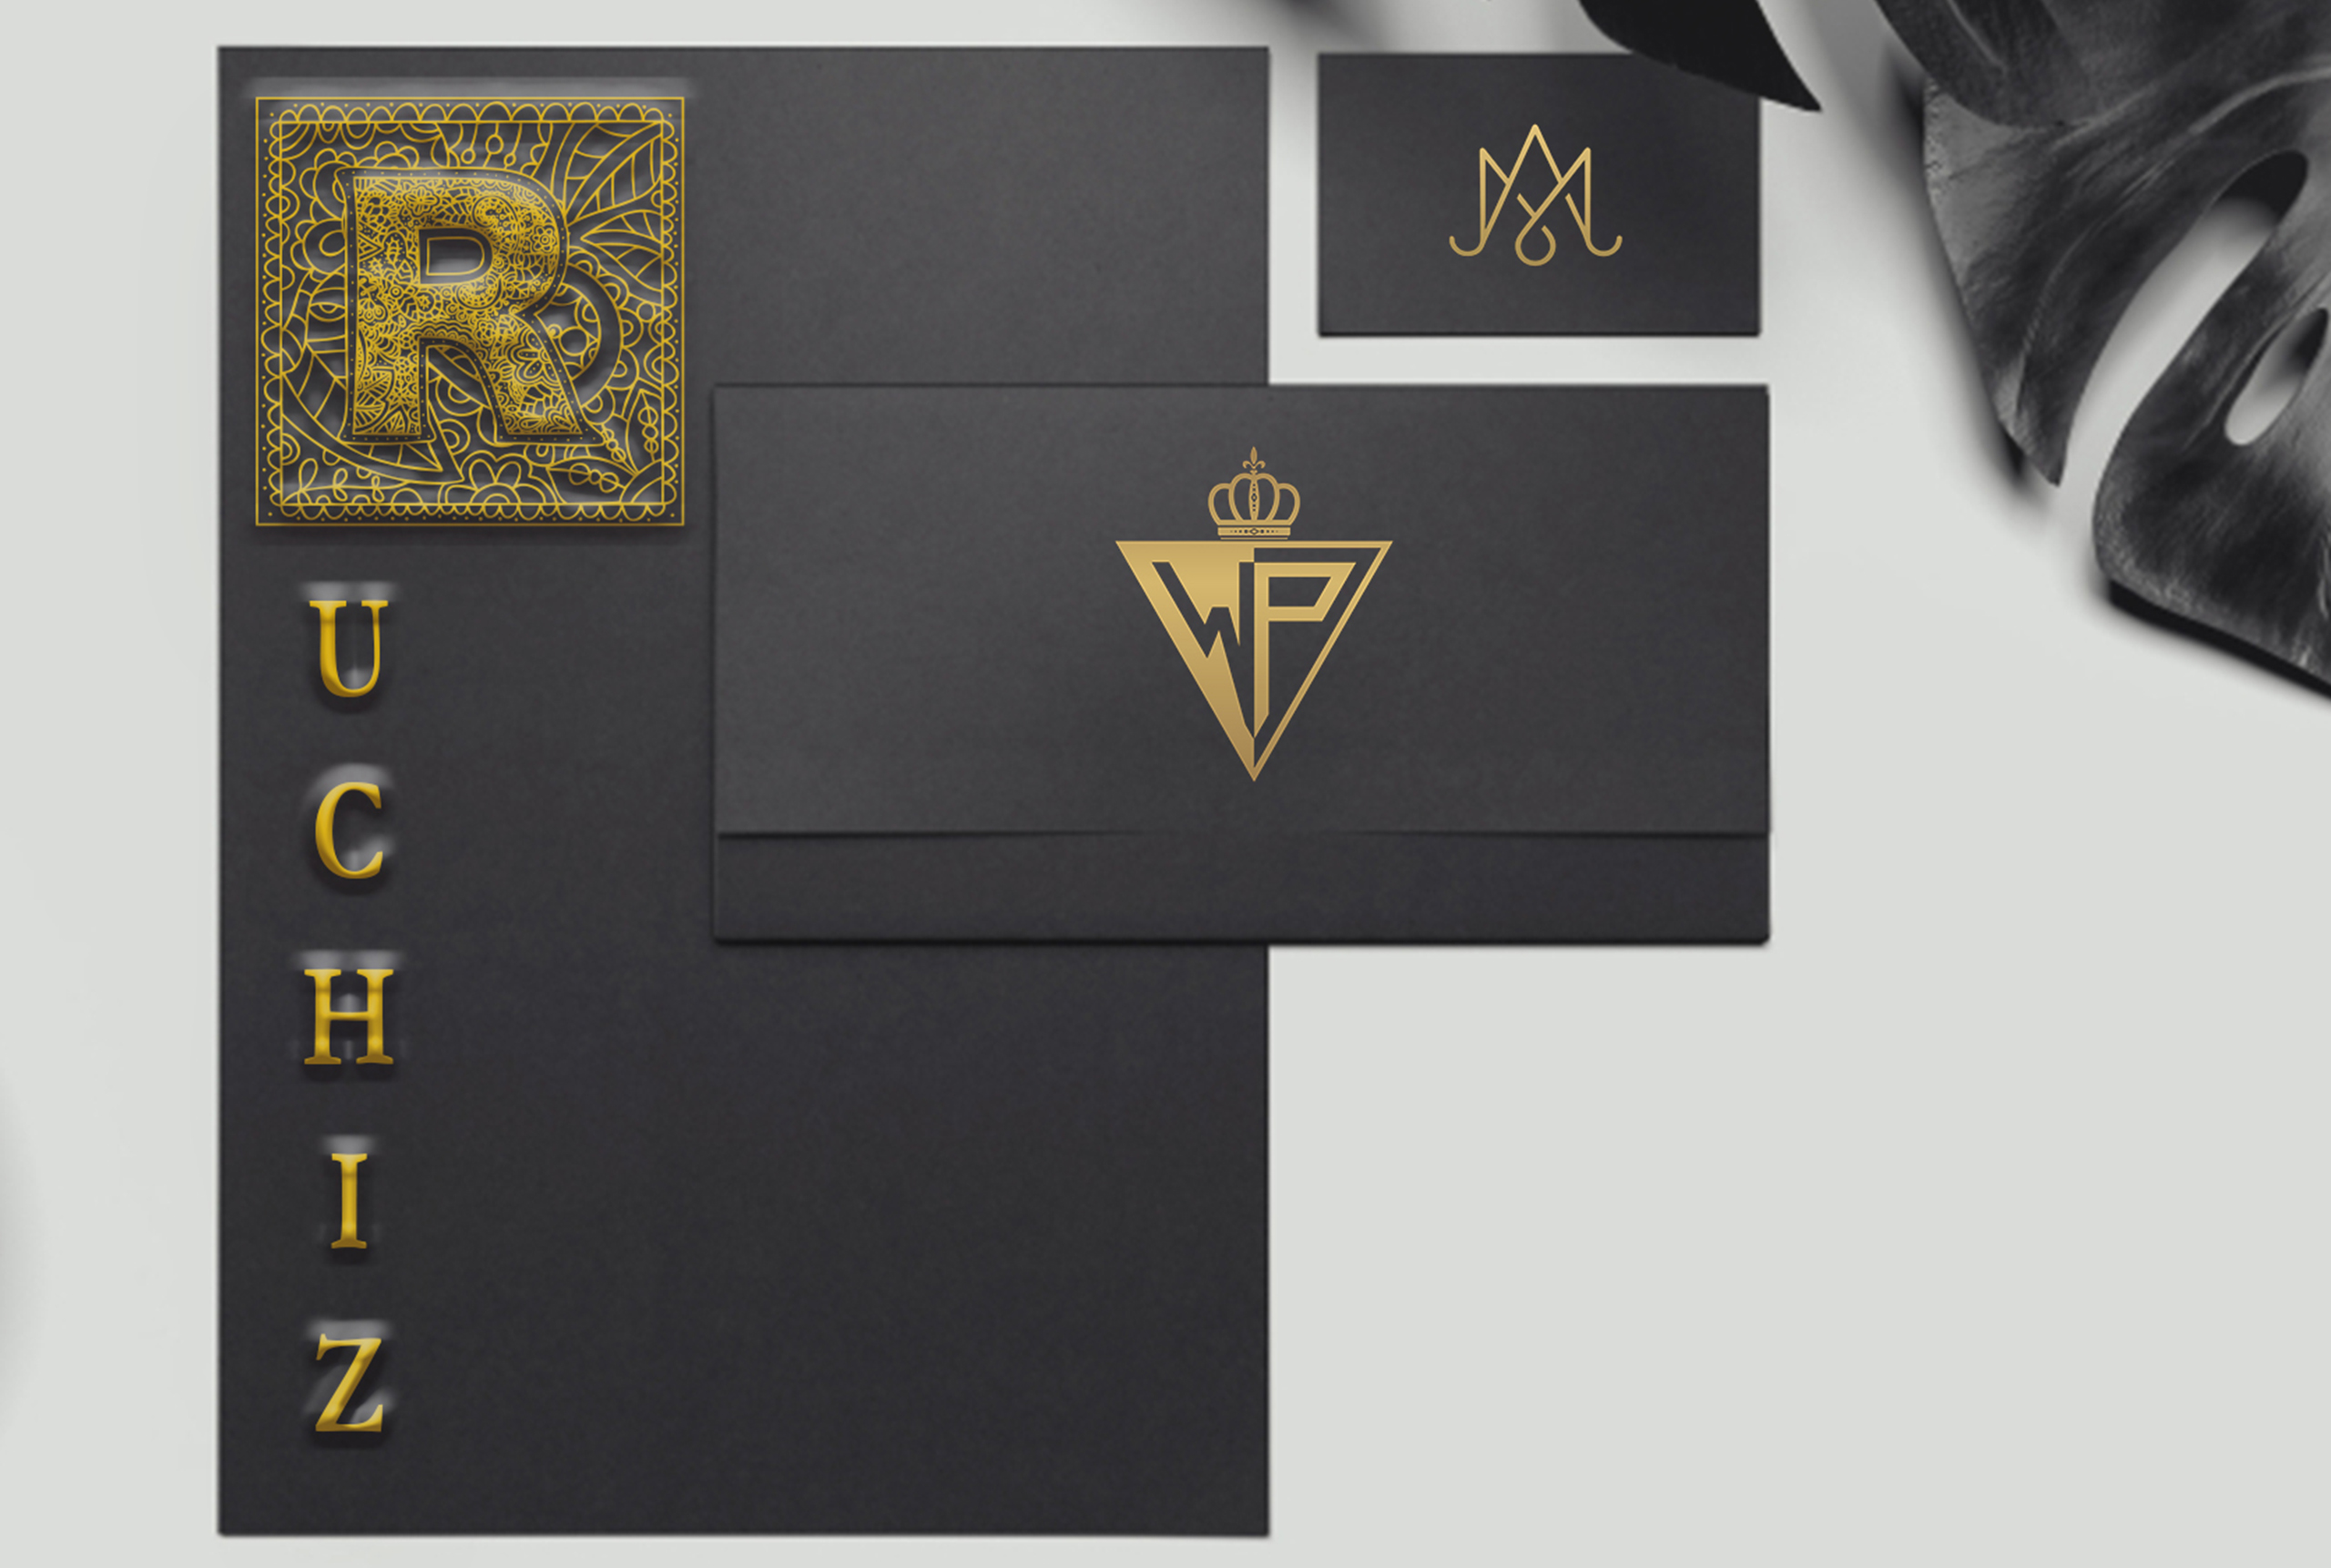 I Will Design An Award Worthy Luxury Initial Monogram Logo Within 4 Hours